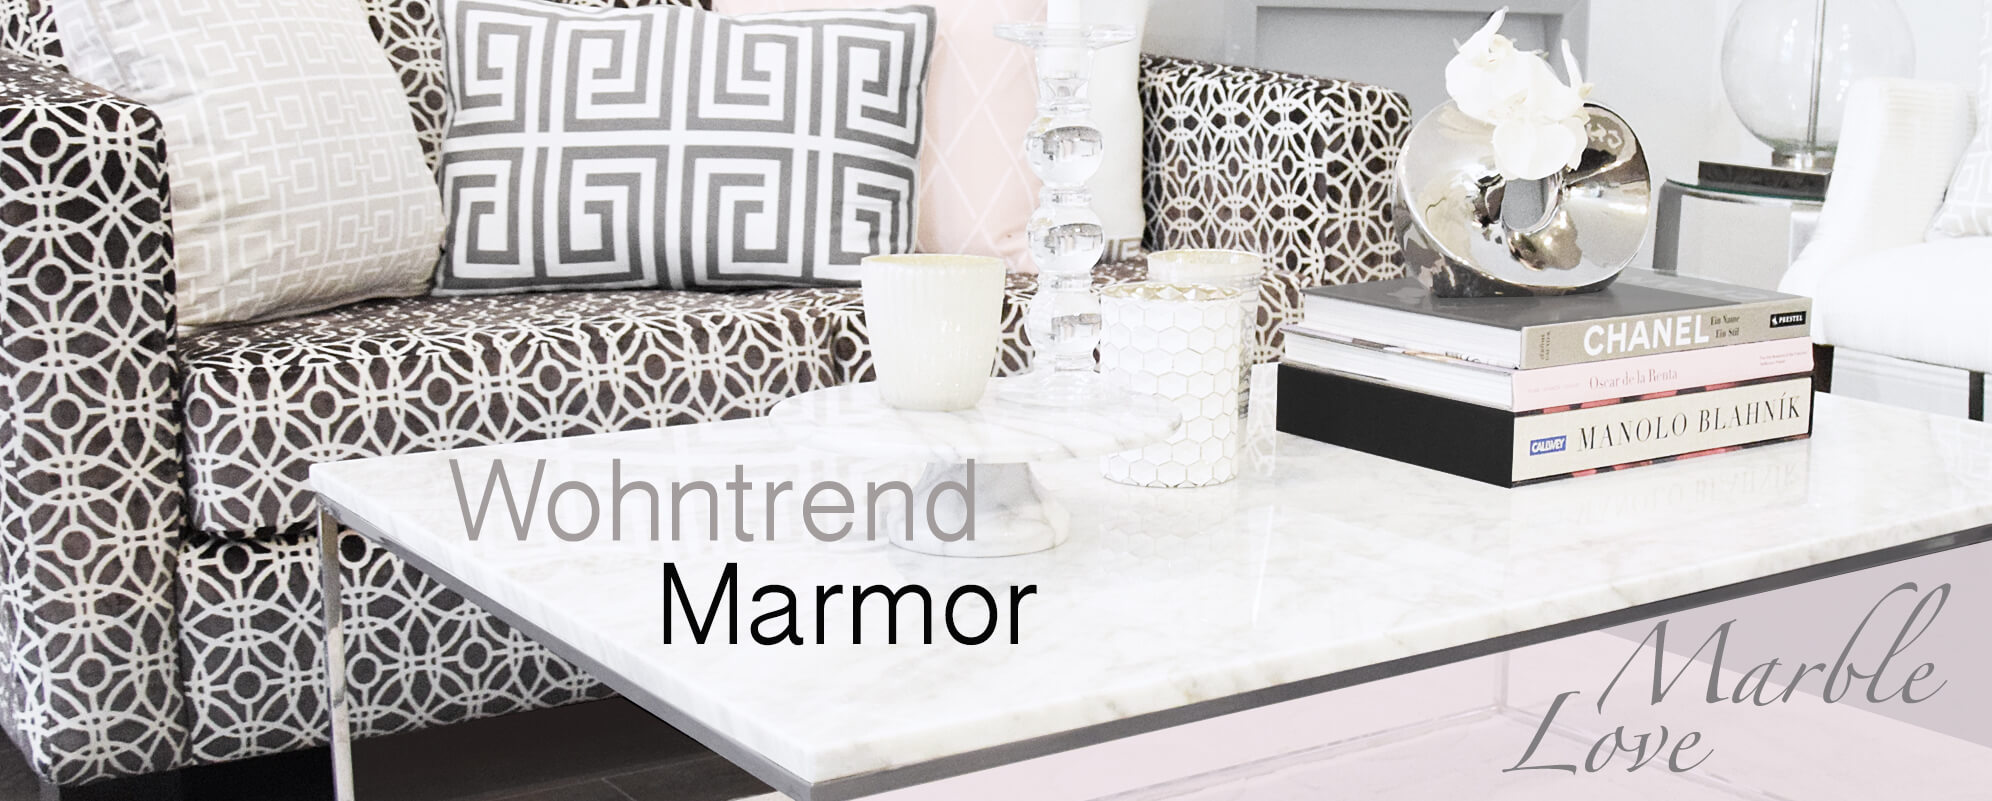 Wohntrend Marmor